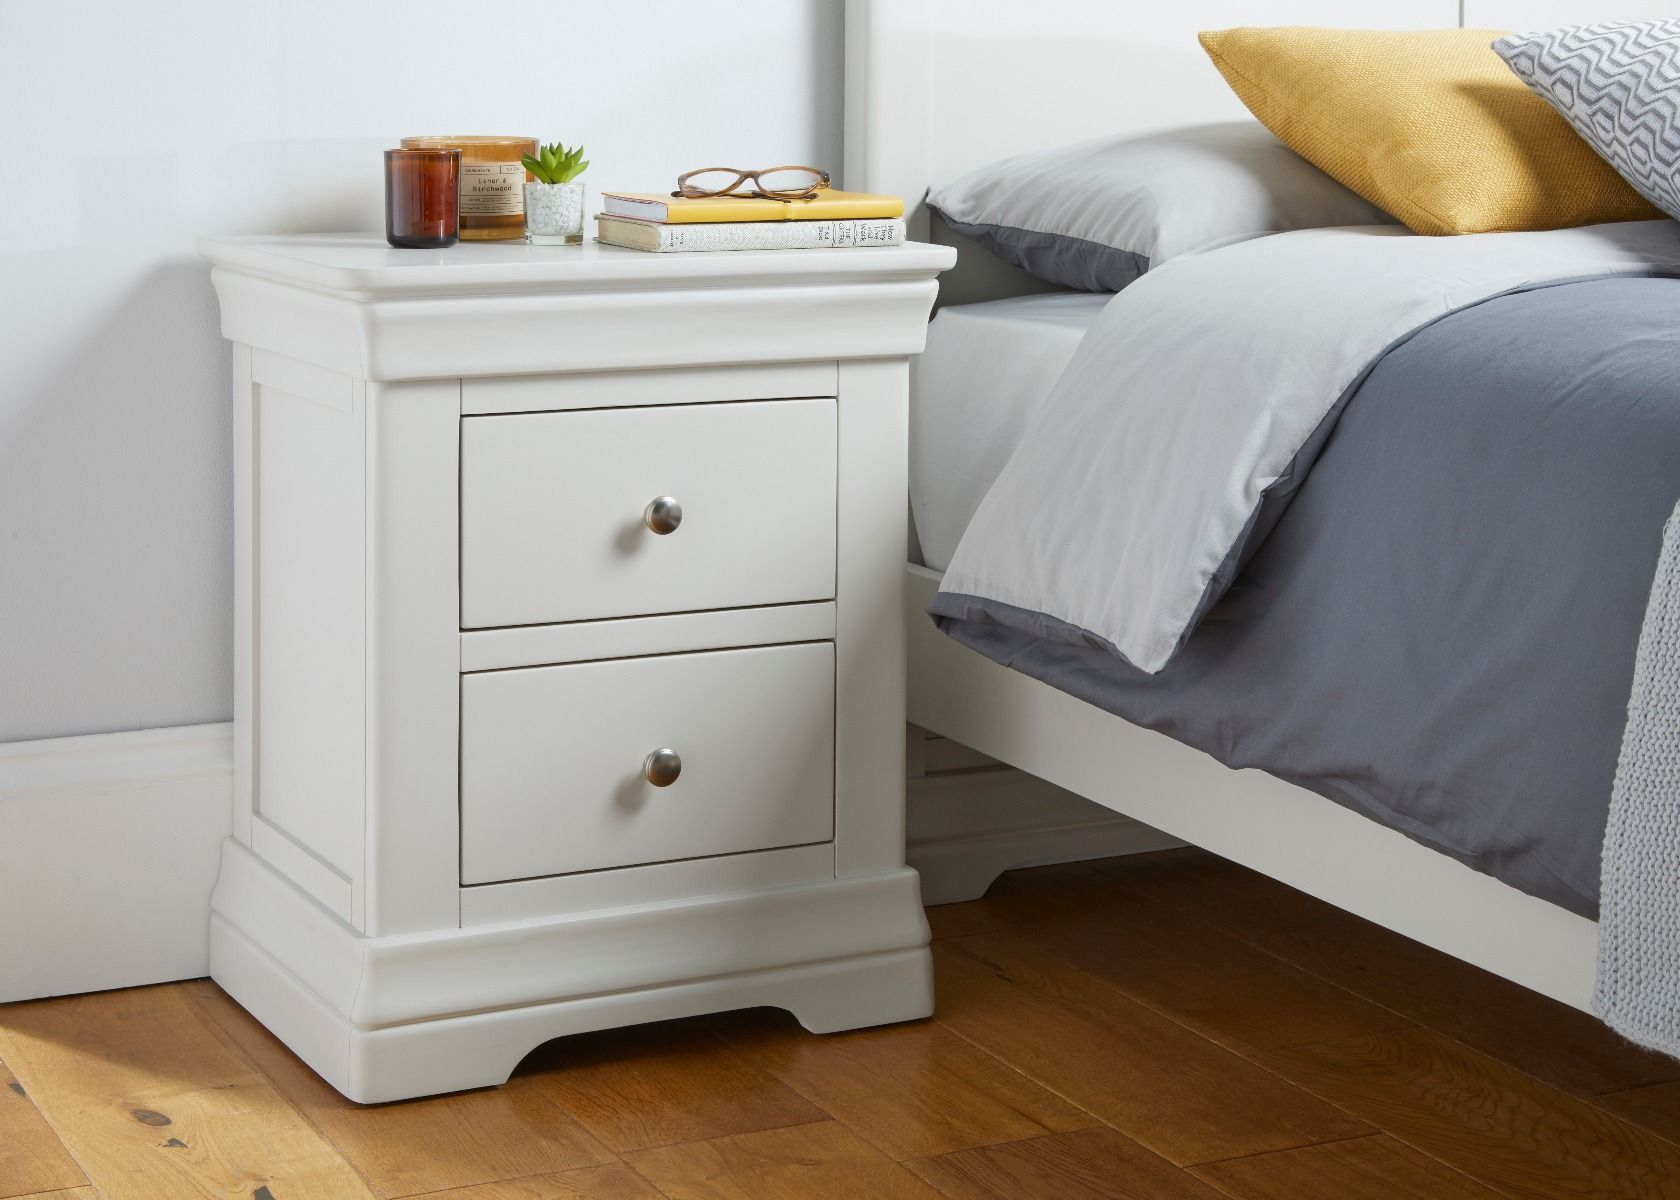 Toulouse Grey Painted 9 Drawer Bedside Table - FULLY ASSEMBLED - WINTER SALE